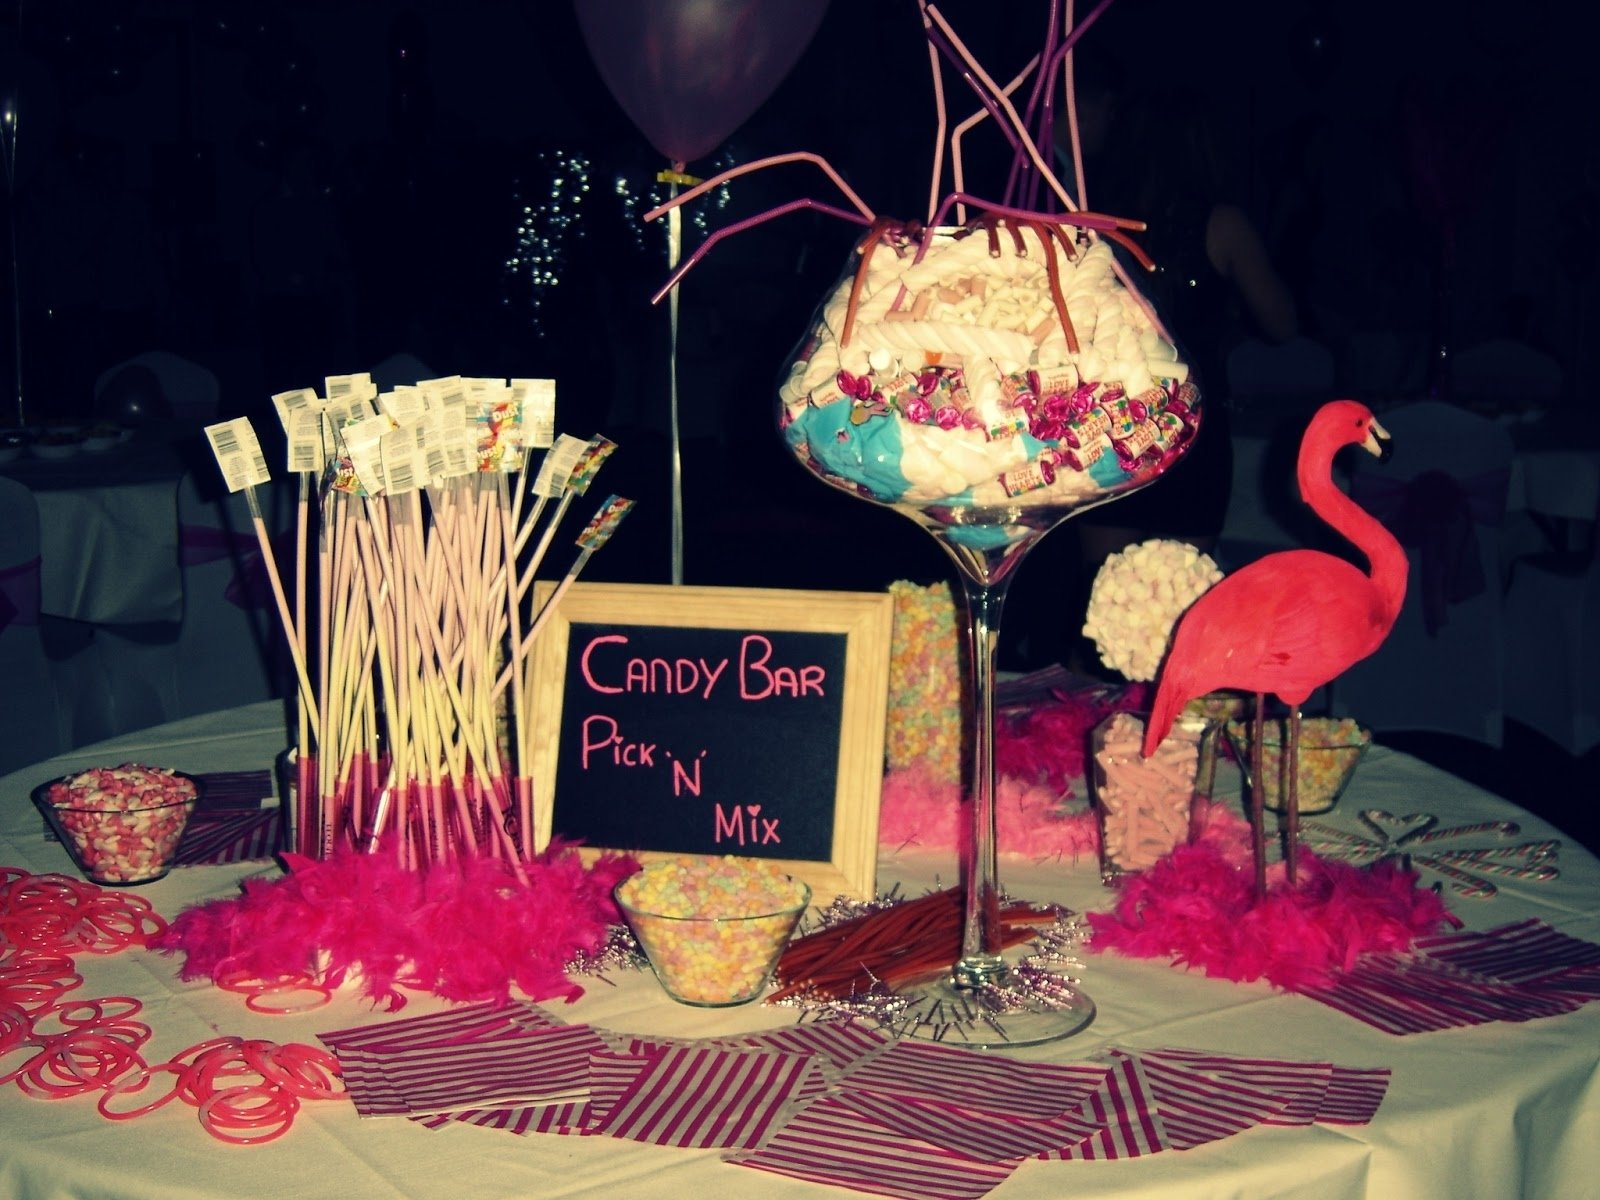 10 Best 18Th Birthday Party Ideas For A Girl birthday party ideas android iphone ipad dma homes 34945 4 2020